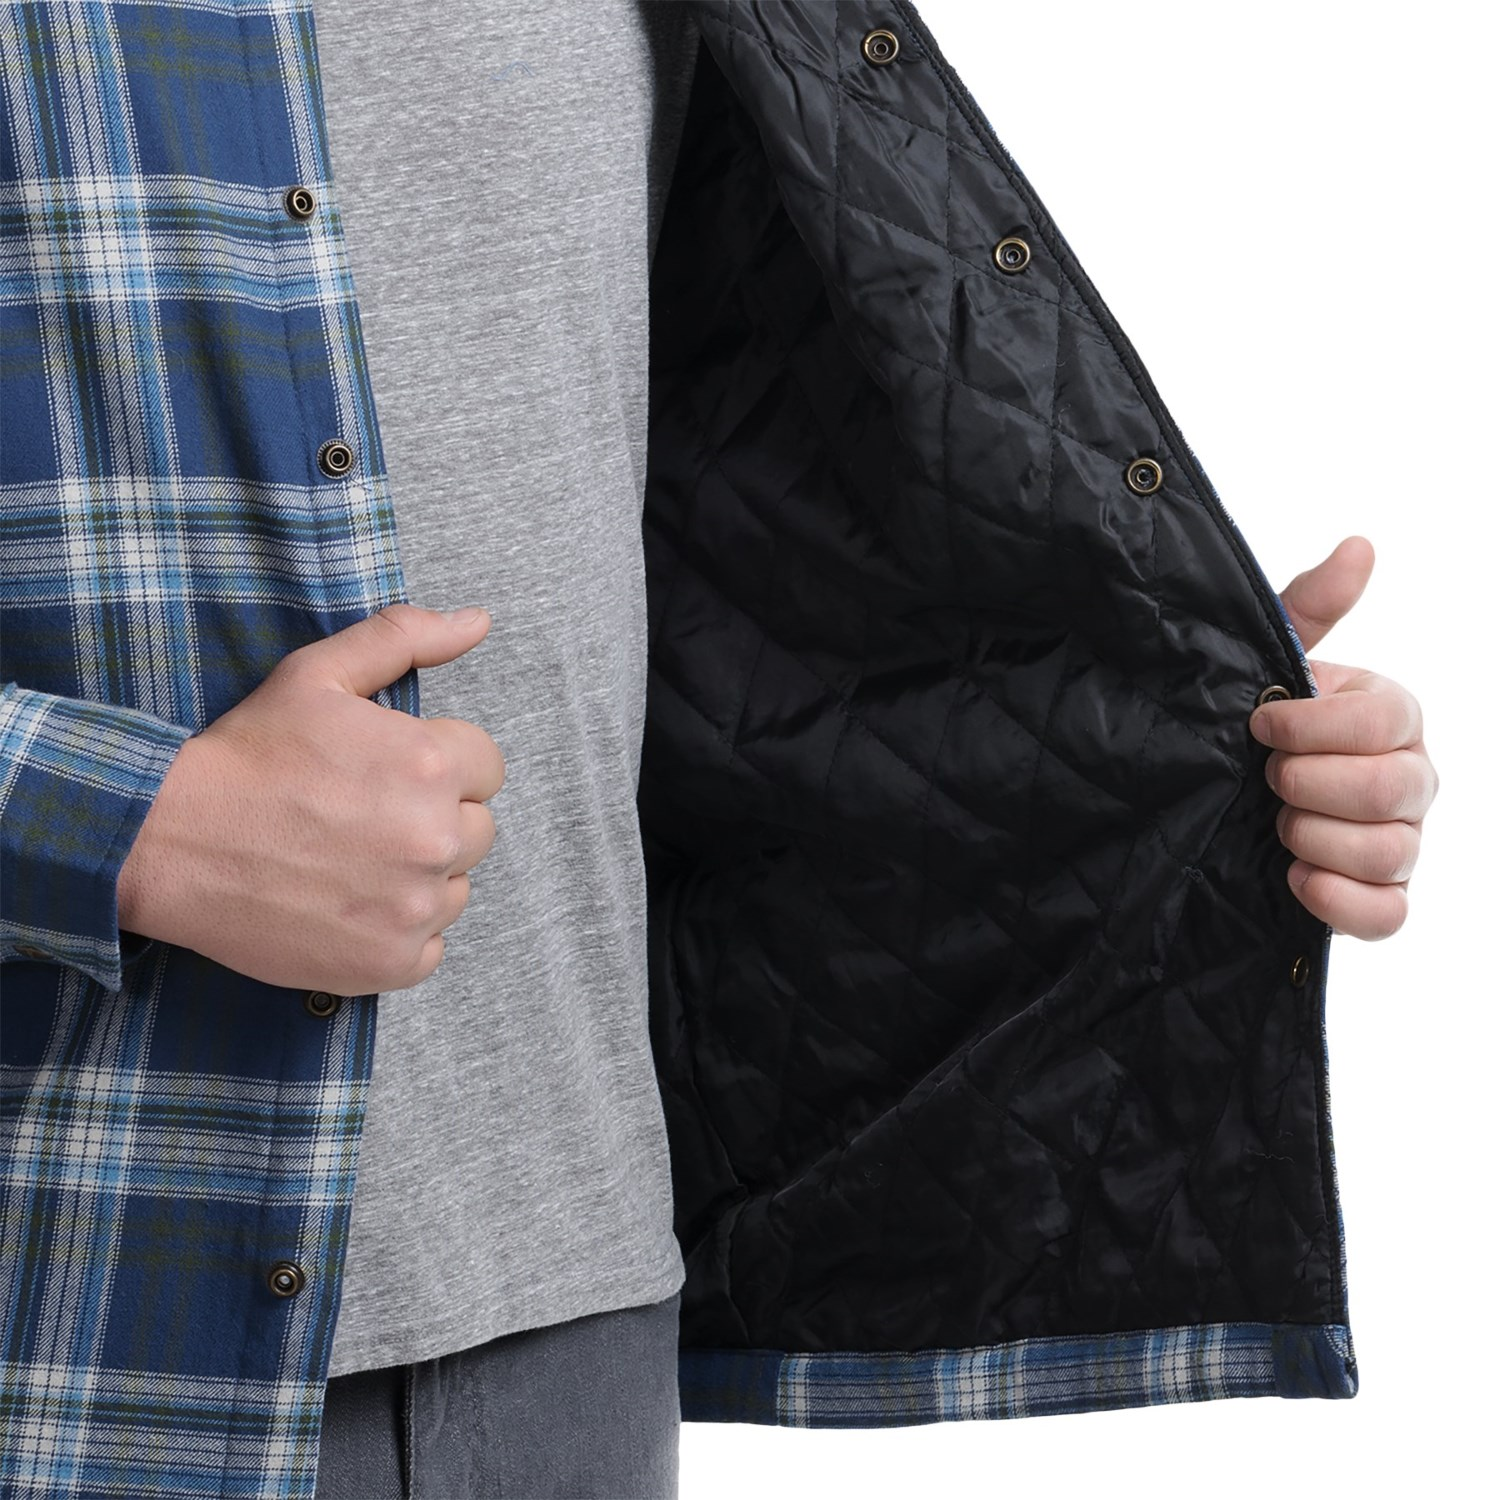 Flannel Shirt Jacket Quilted Lining - Best Shirt 2017